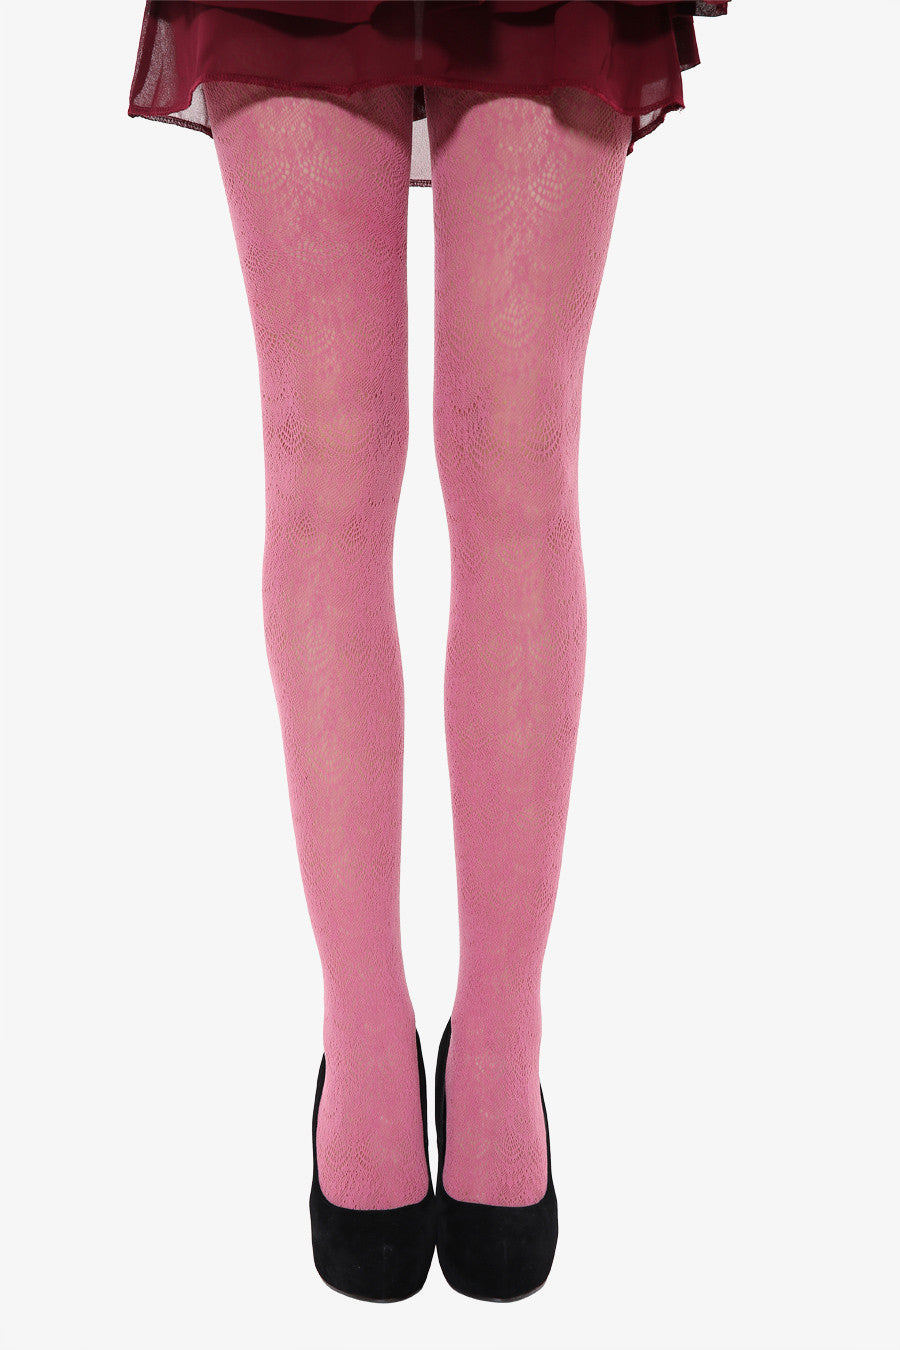 Peacock Tails Tights In Pink